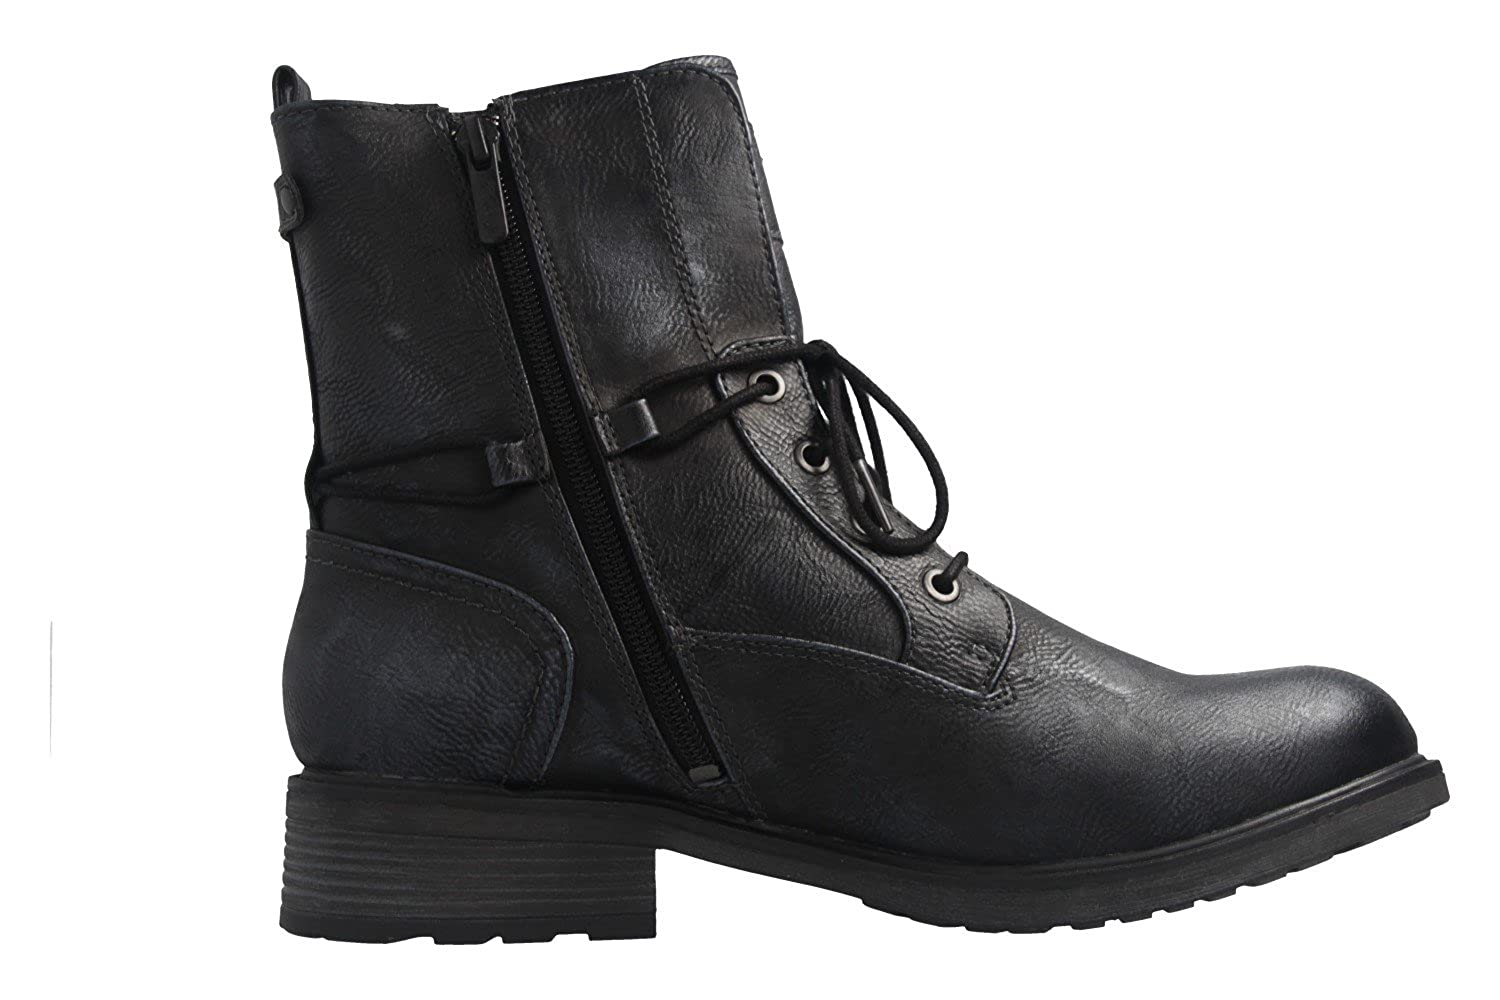 604 Et Sacs 820 1264 Mustang Chaussures Femme Bottines AY4z5UU0qw